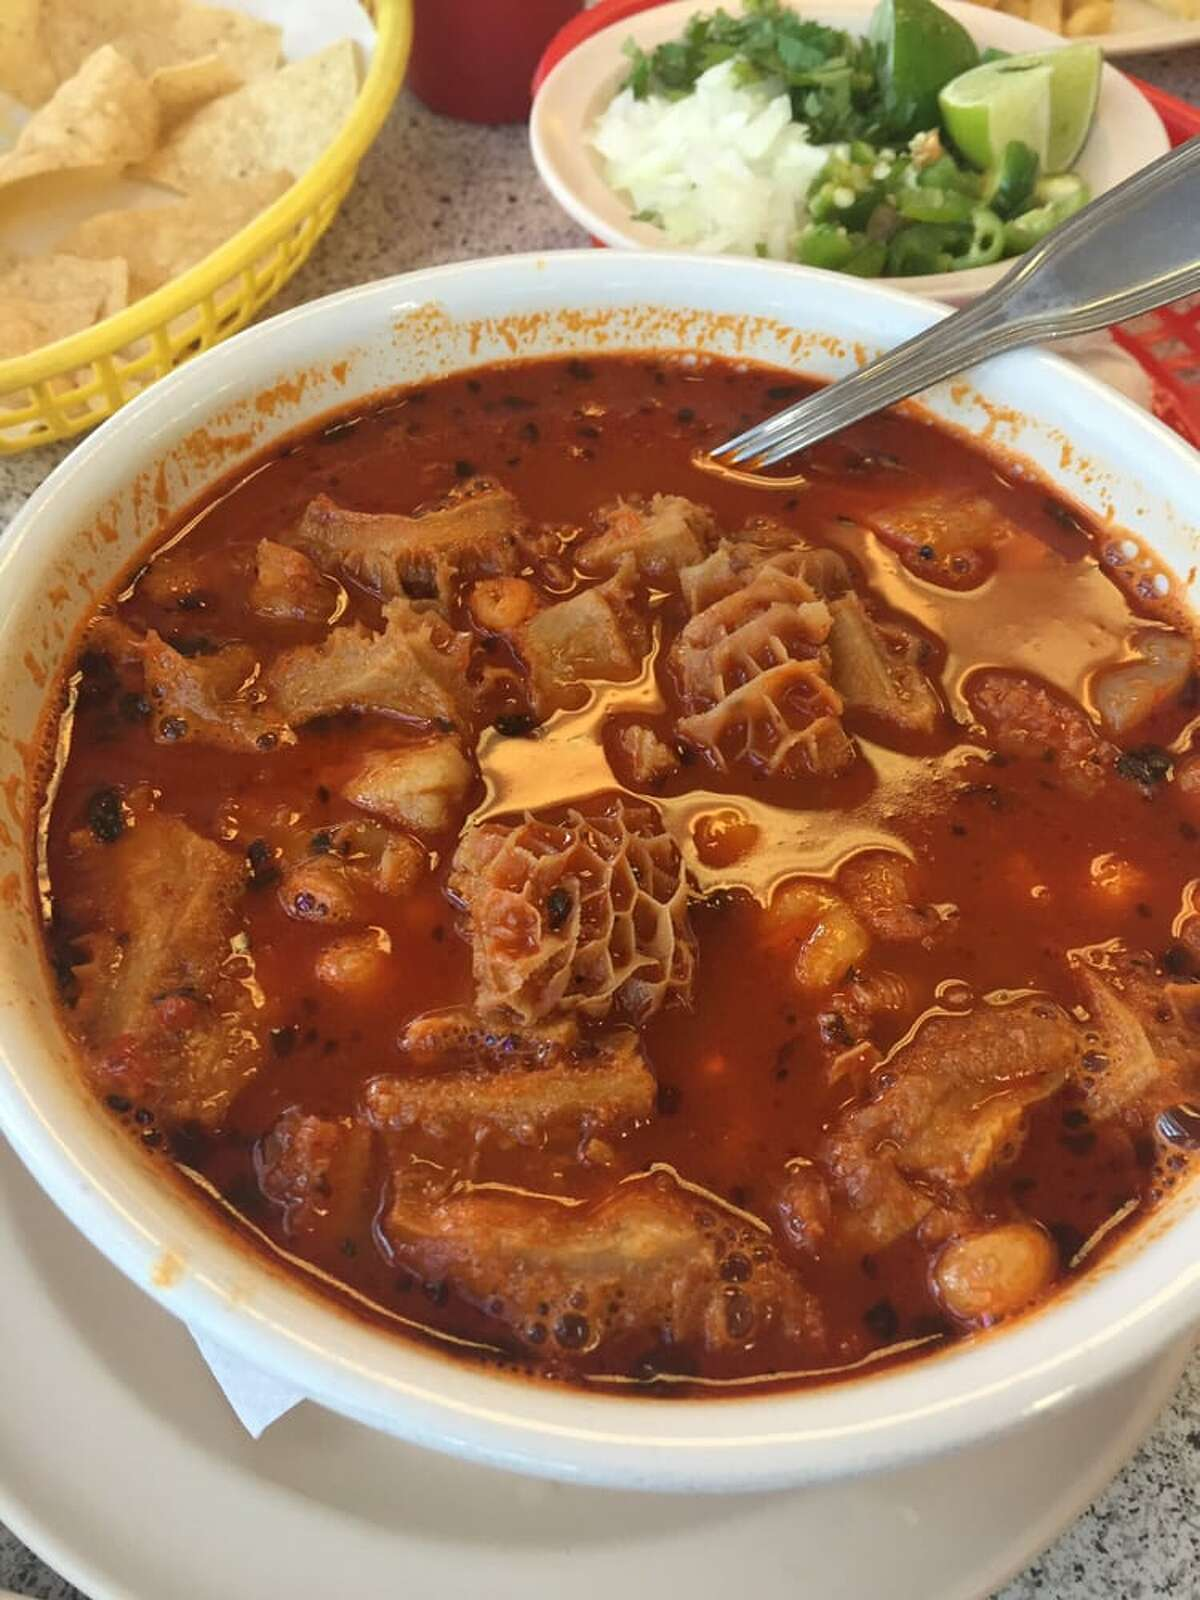 3. Super La Mexicana Willow Address:10002 Stella Link Rd Sample review: